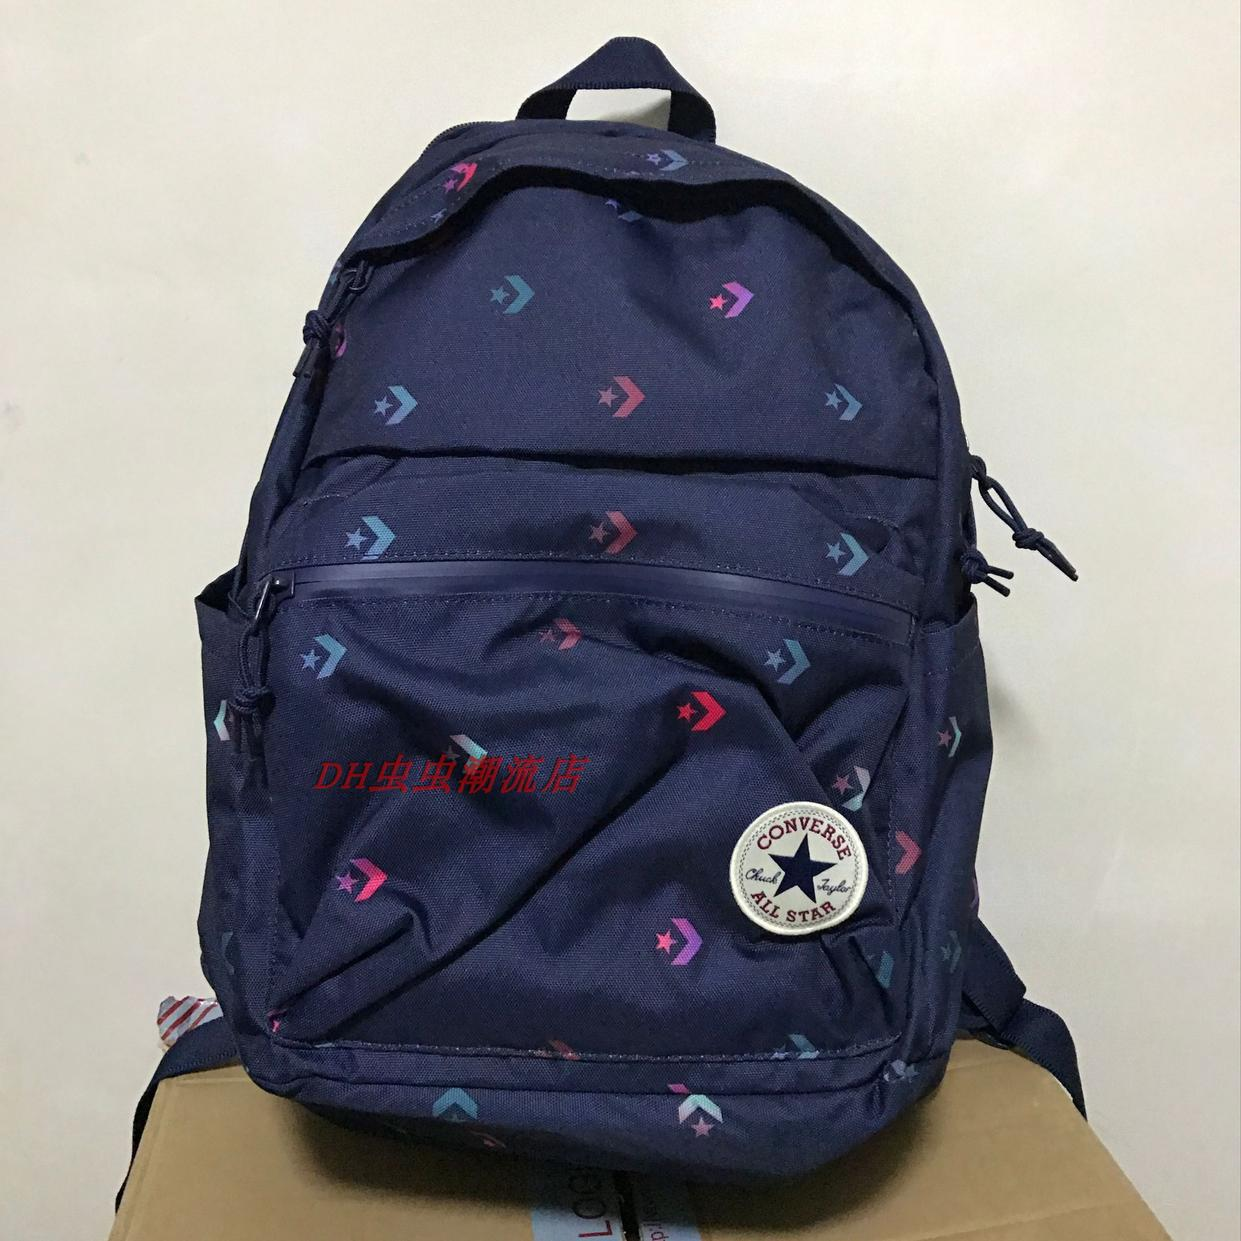 9a1031d246 1 Color Converse Mini Backpack Source · Converse bag CONVERSE backpack men  and women backpack men and women